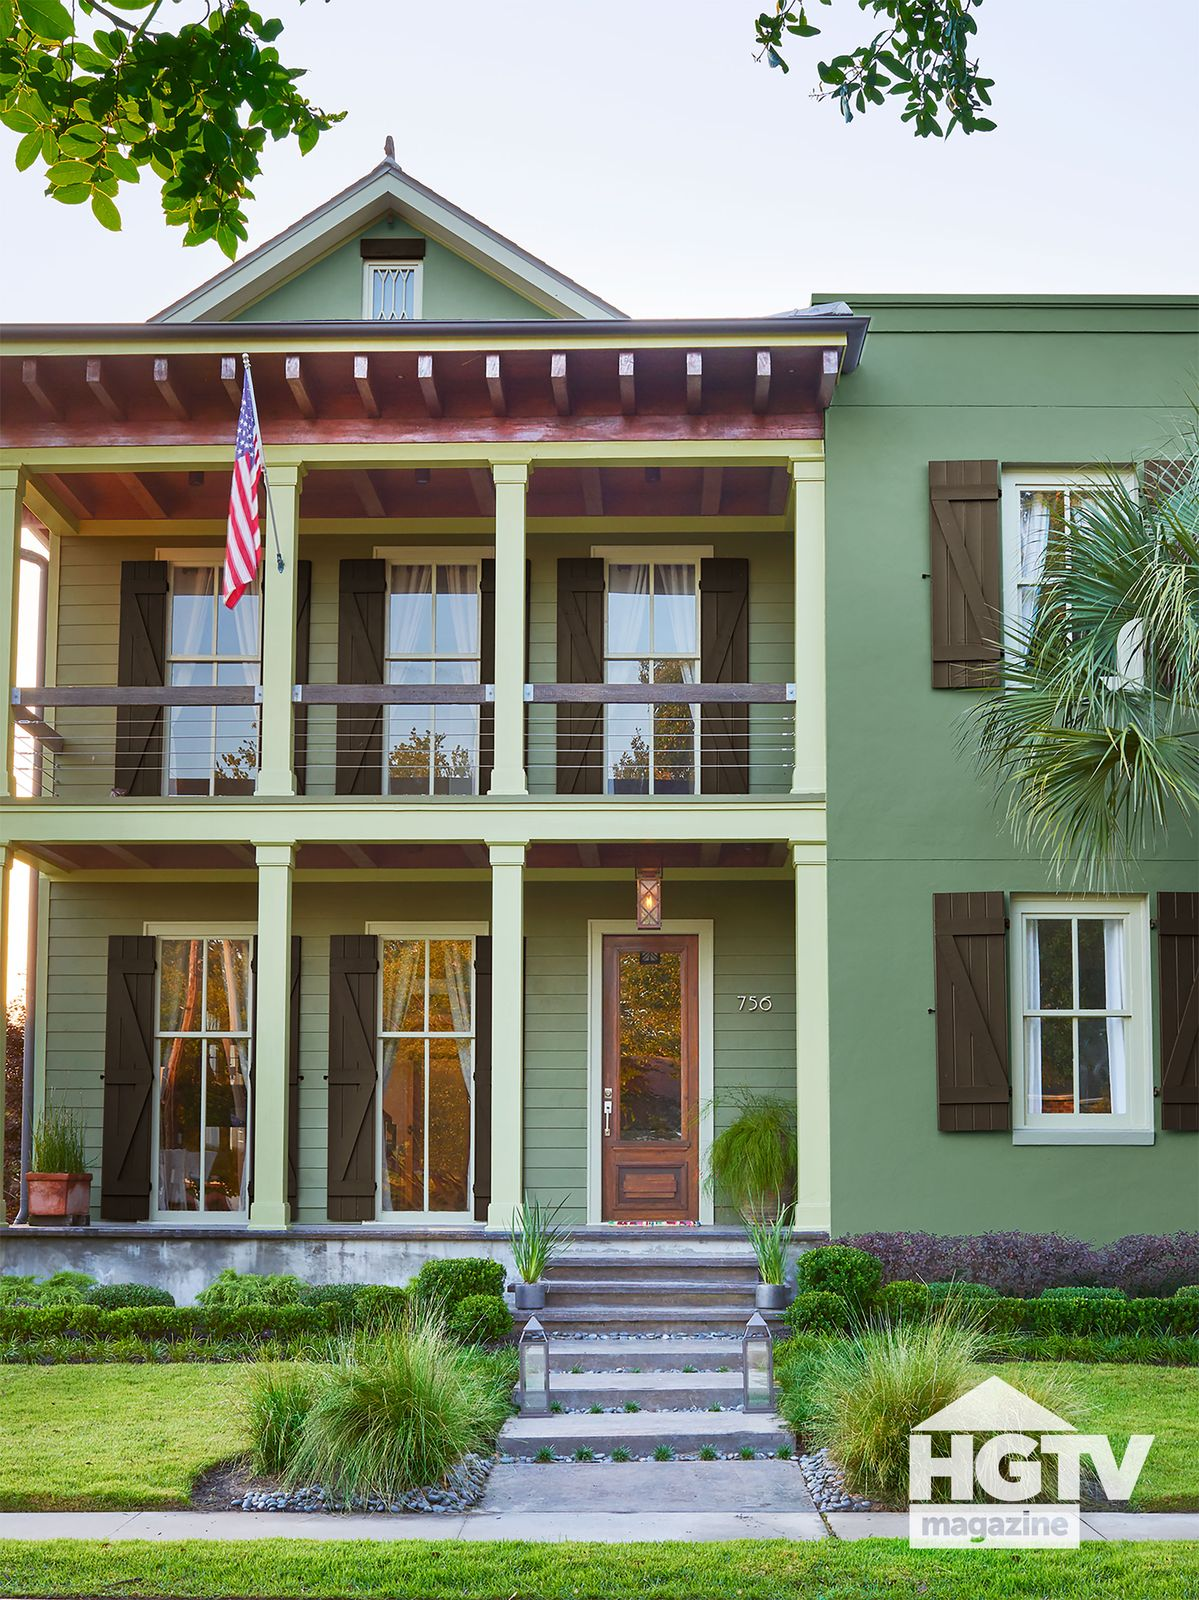 A green, two-story home from HGTV Magazine